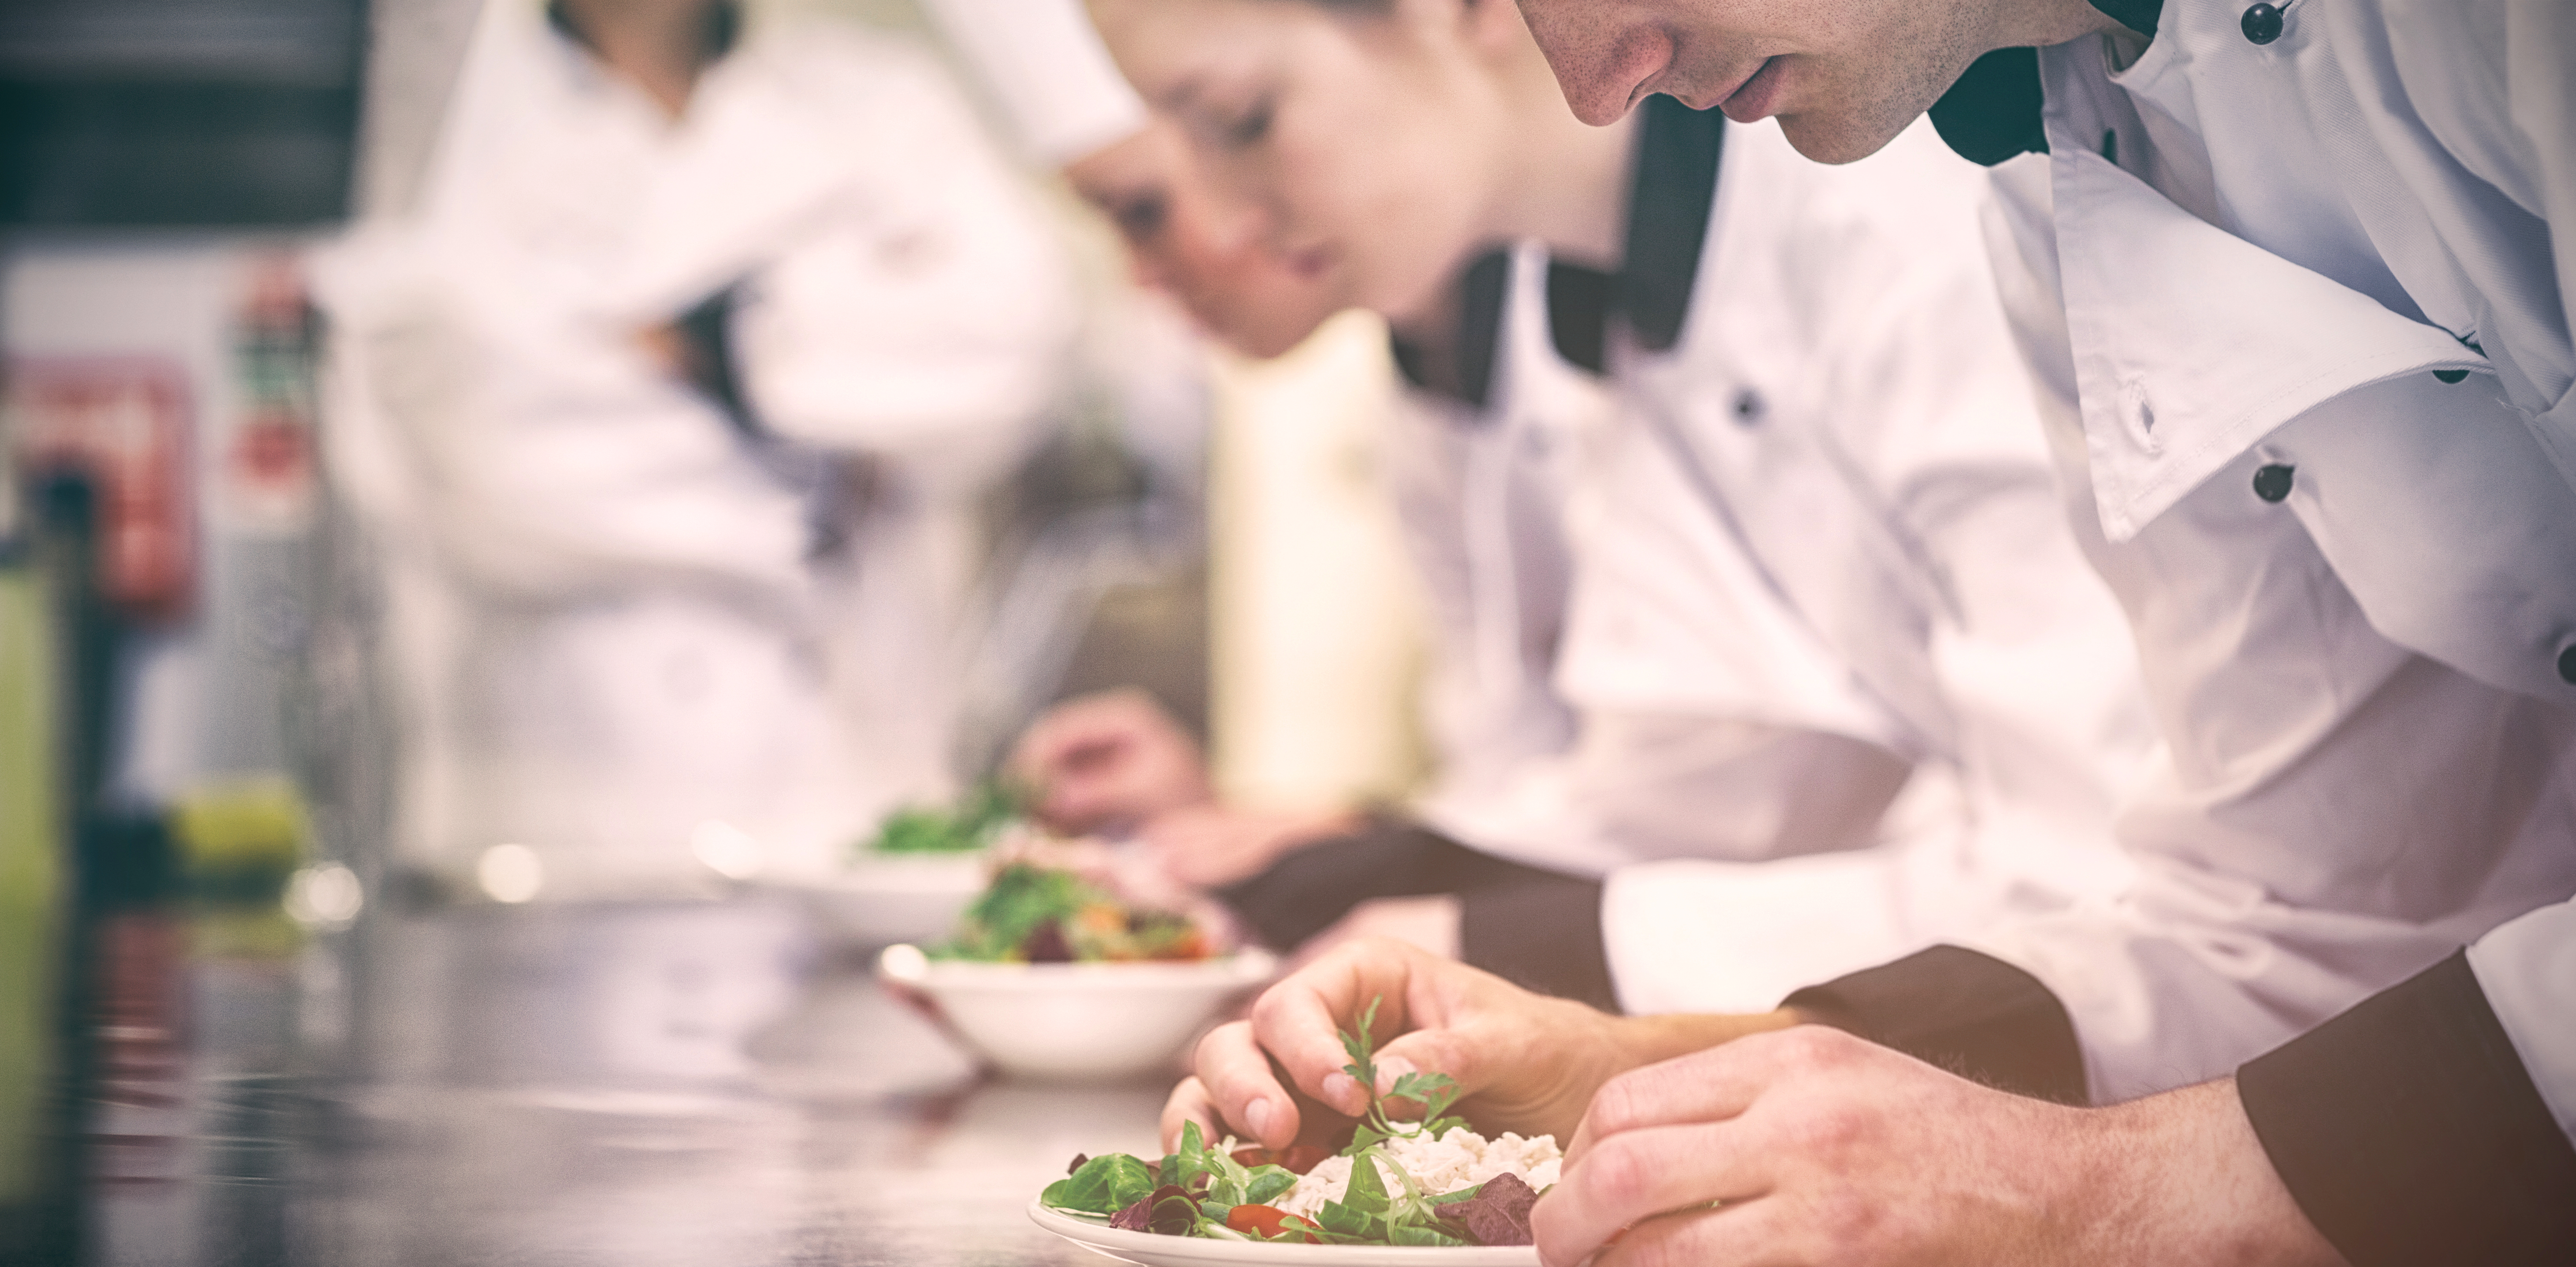 Culinary students plate a dish